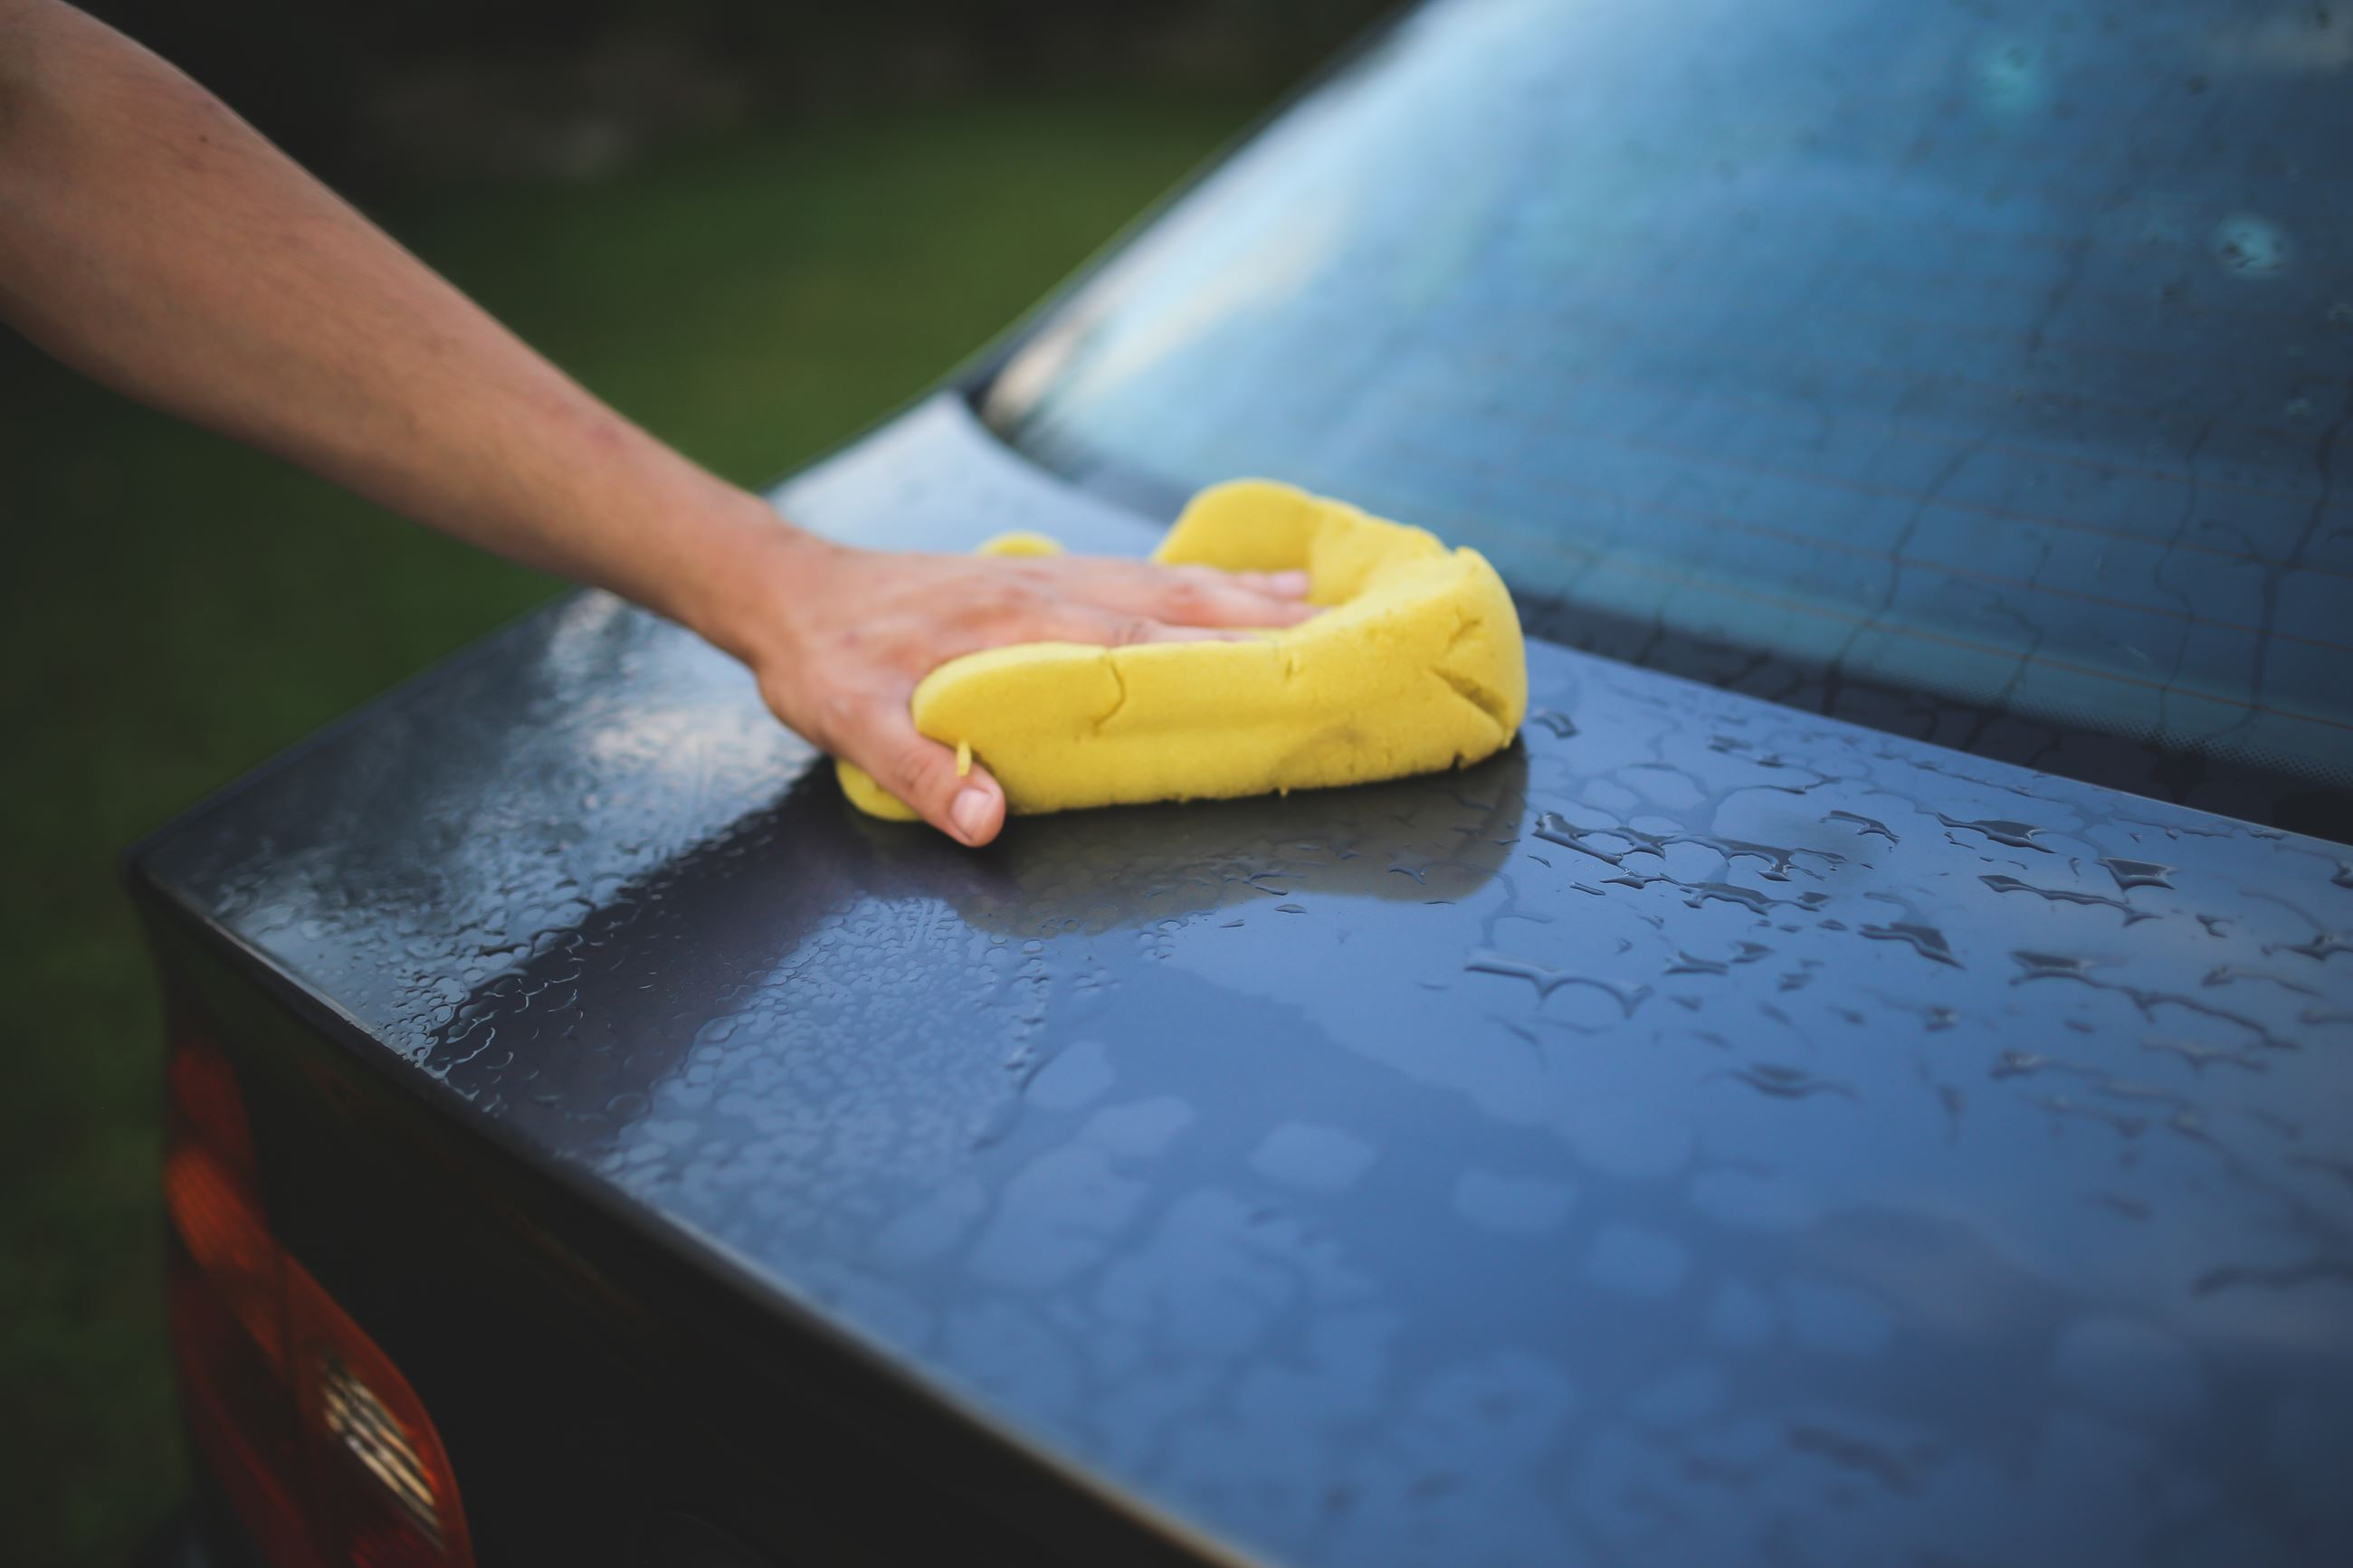 Cleaning a car with a sponge